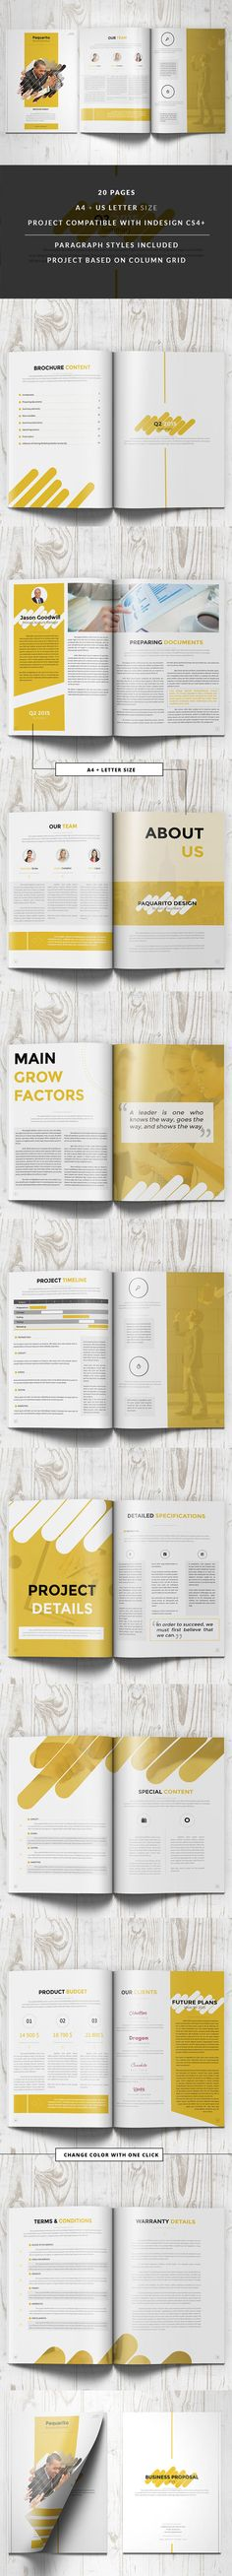 Proposal Proposals, Brochures and Business proposal - free business proposal template download